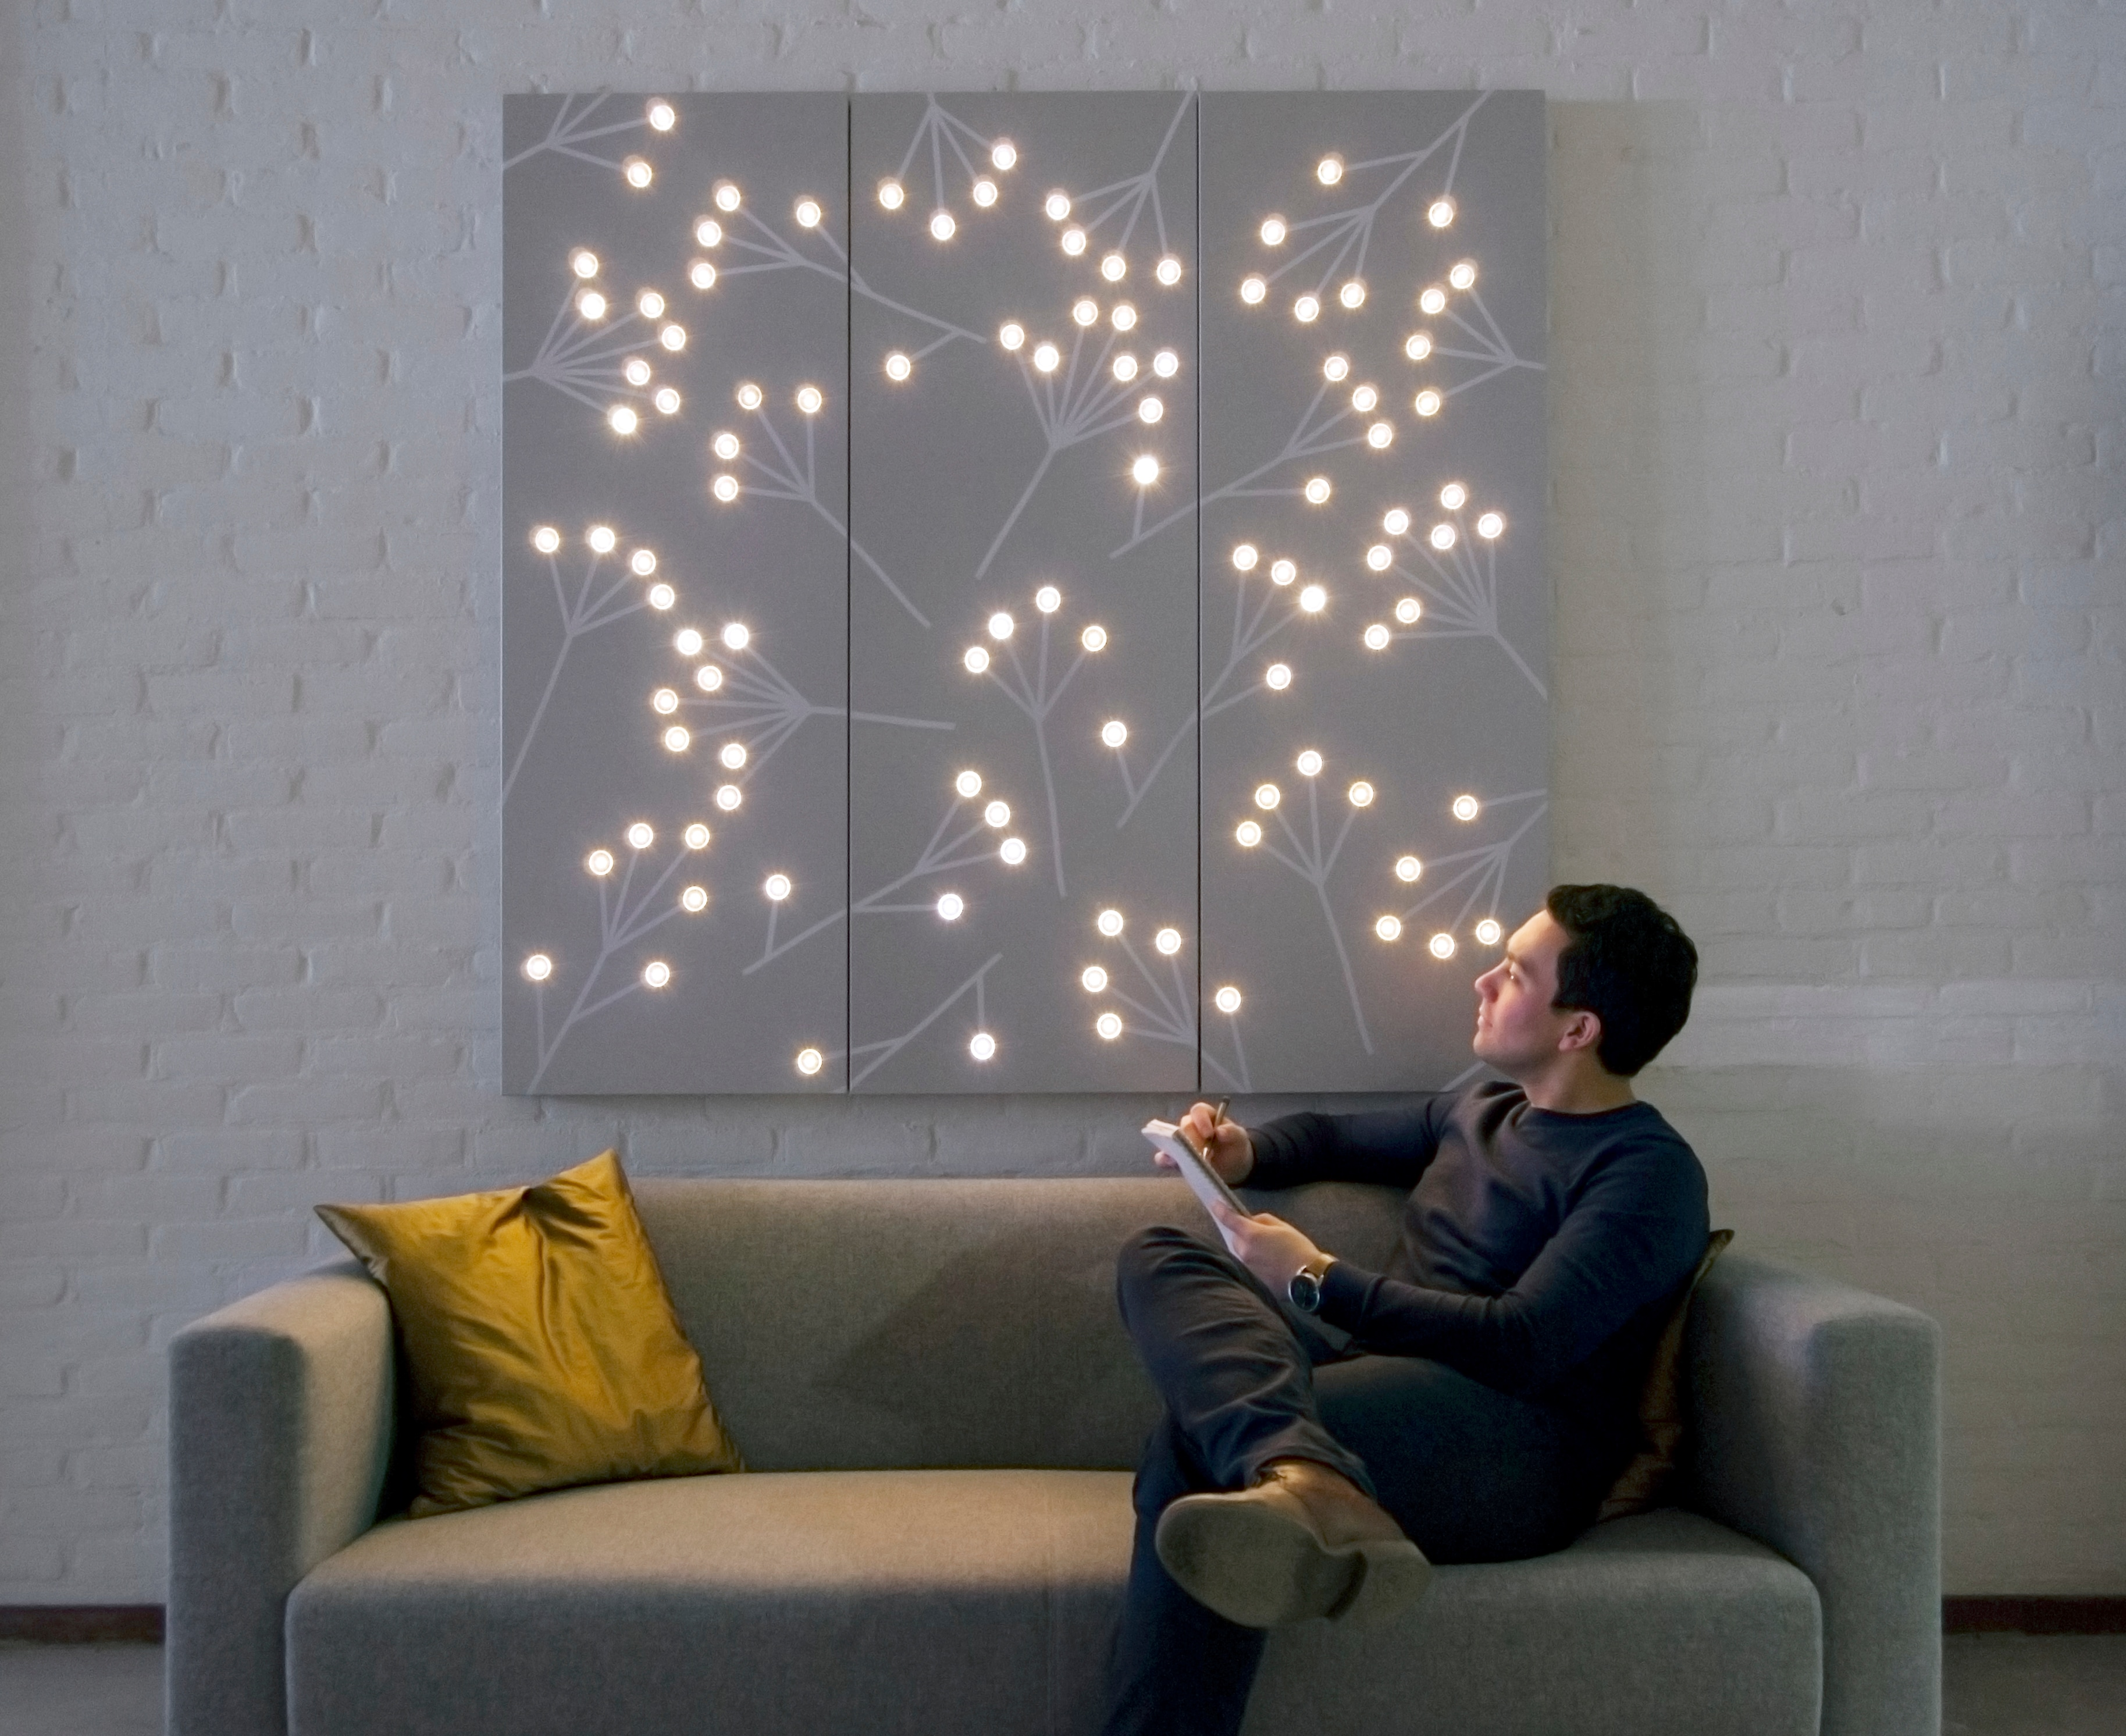 Download hi-res image & Philips makes interior walls shimmer dazzle and delight with new ... azcodes.com